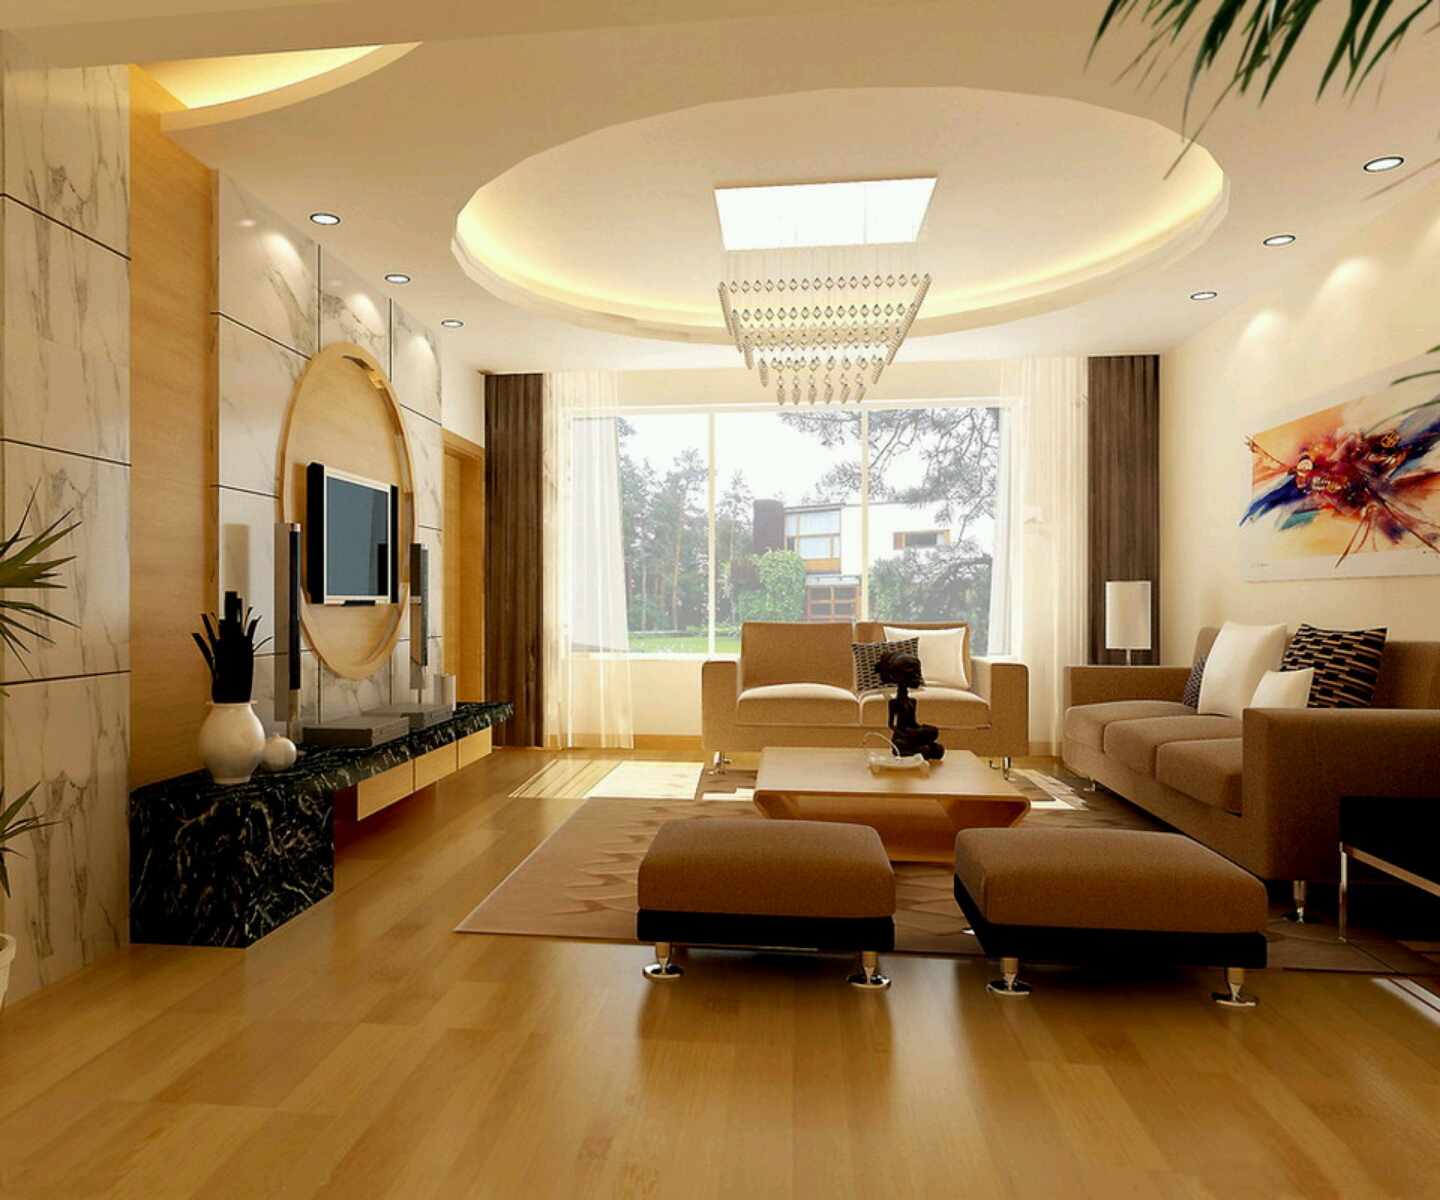 Modern interior decoration living rooms ceiling designs for New modern house interior design